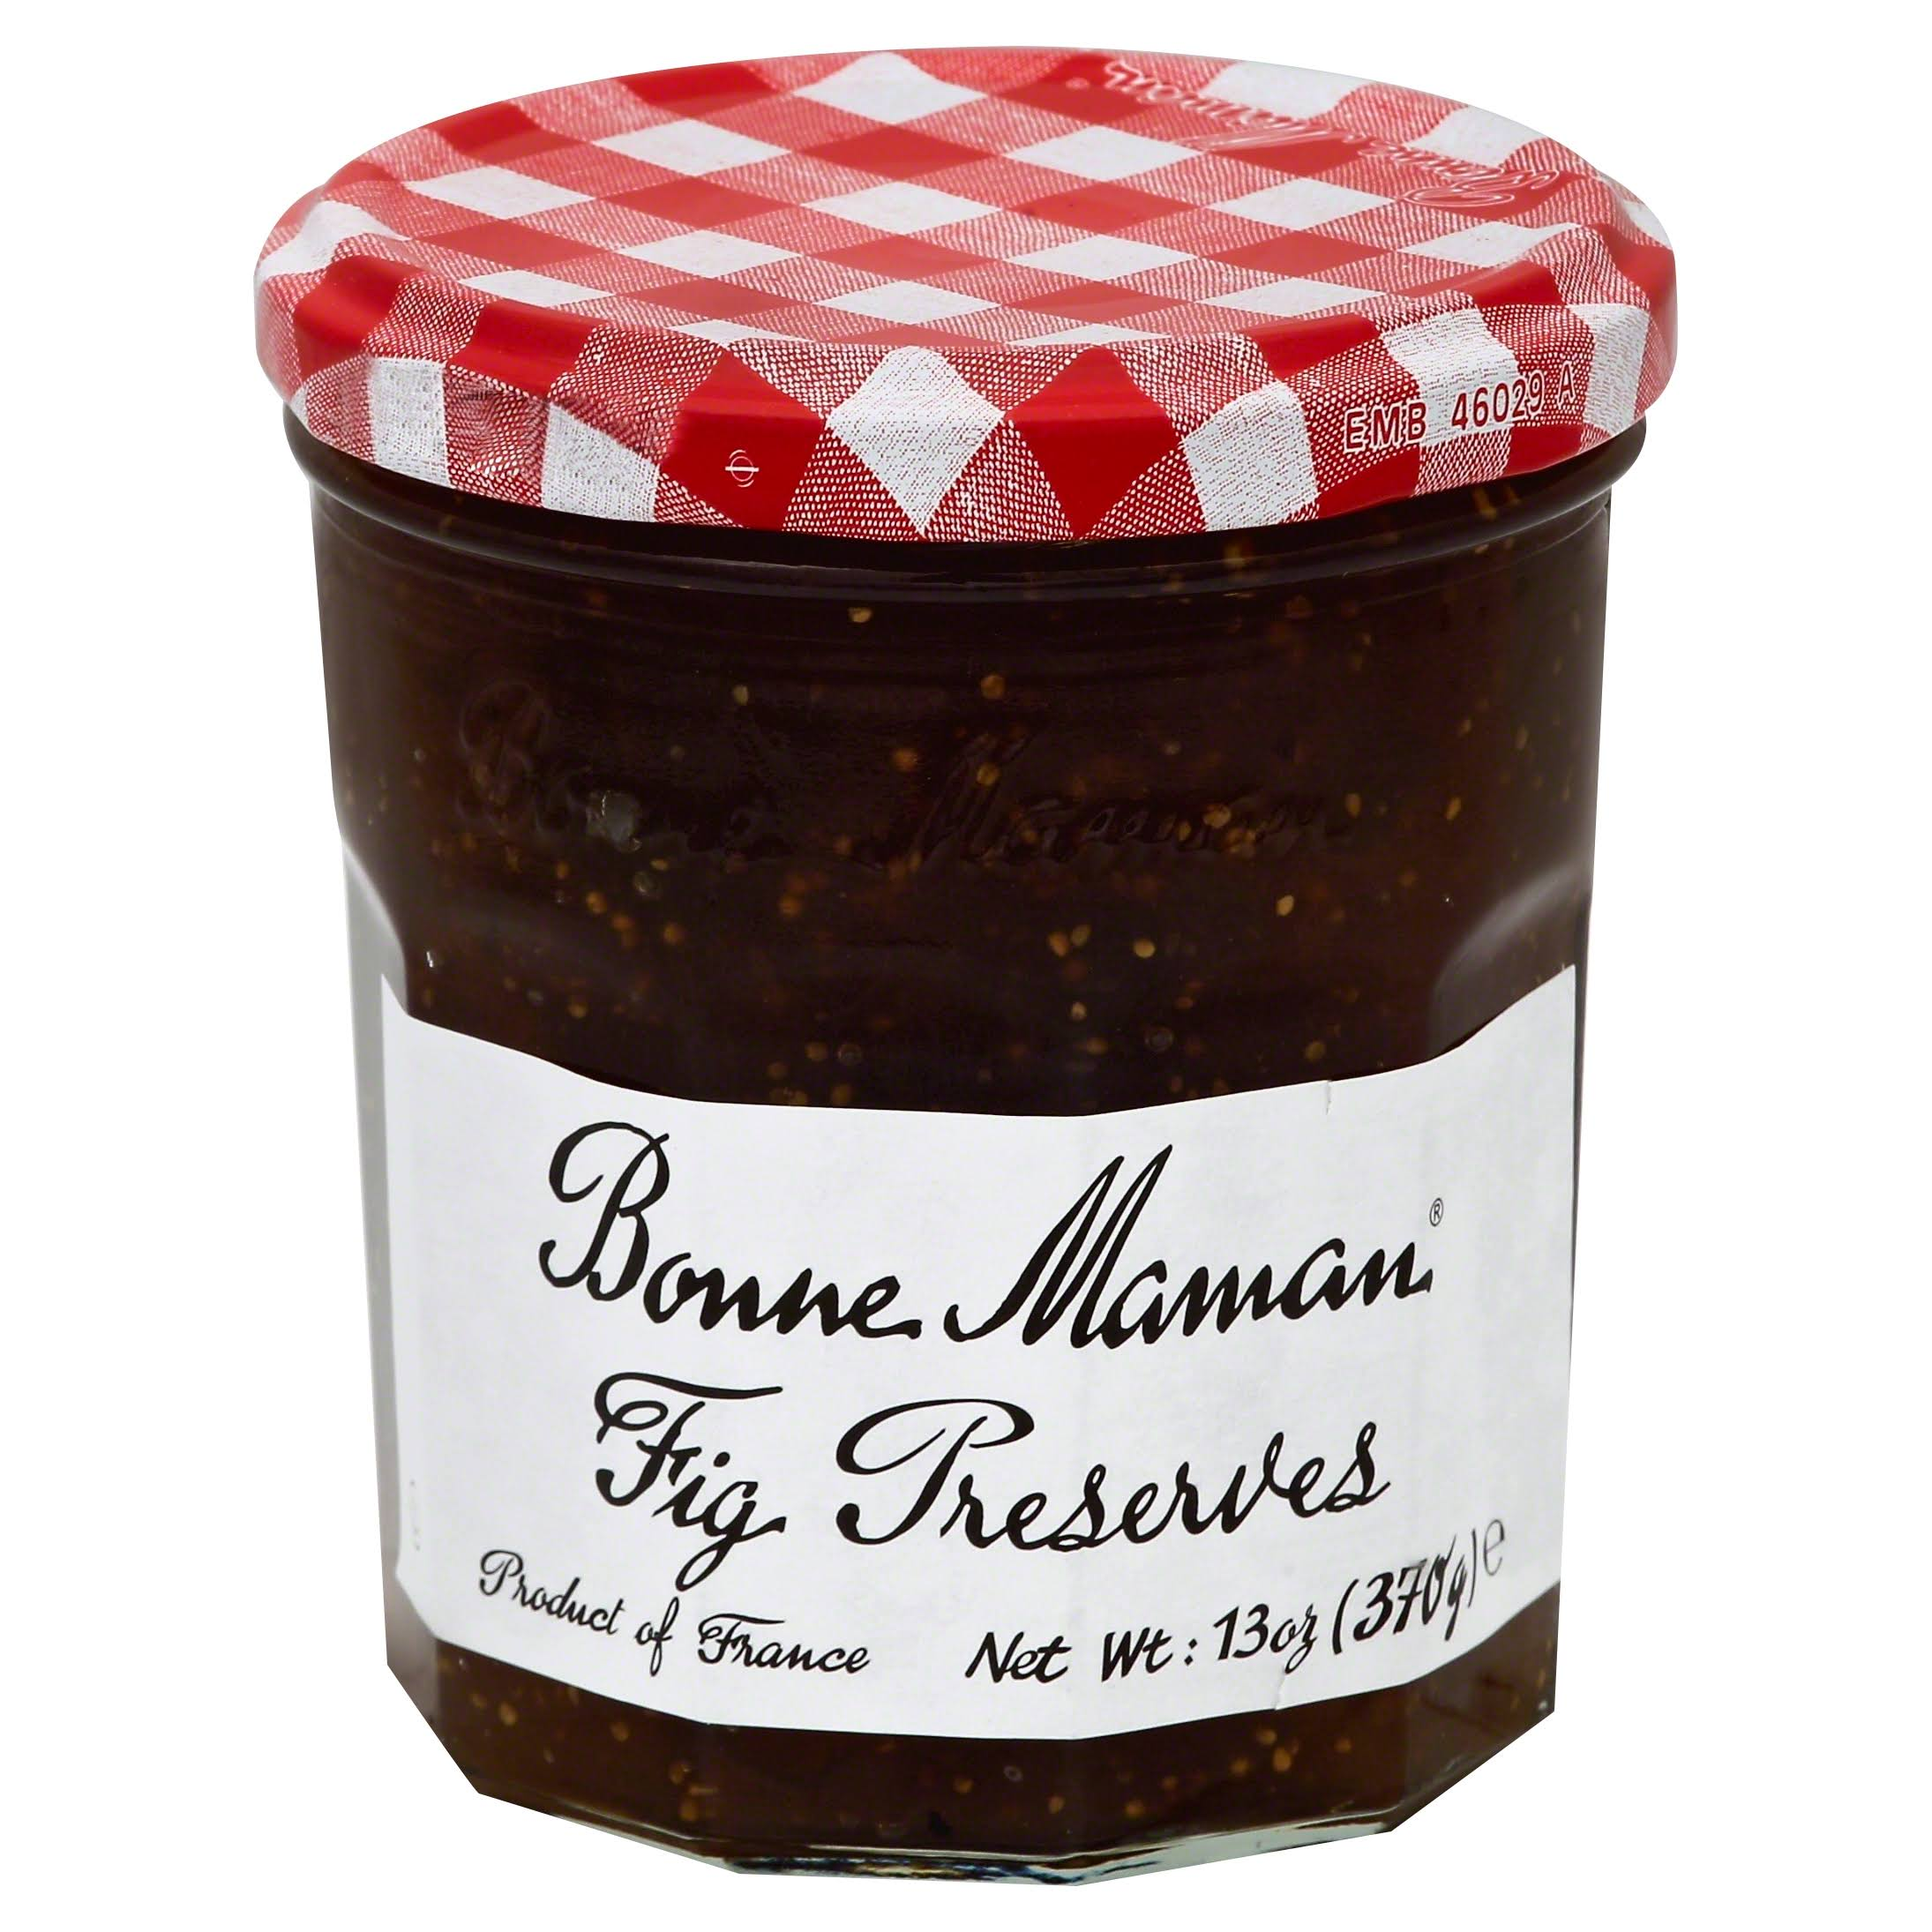 Bonne Maman Fig Preserve - 13oz